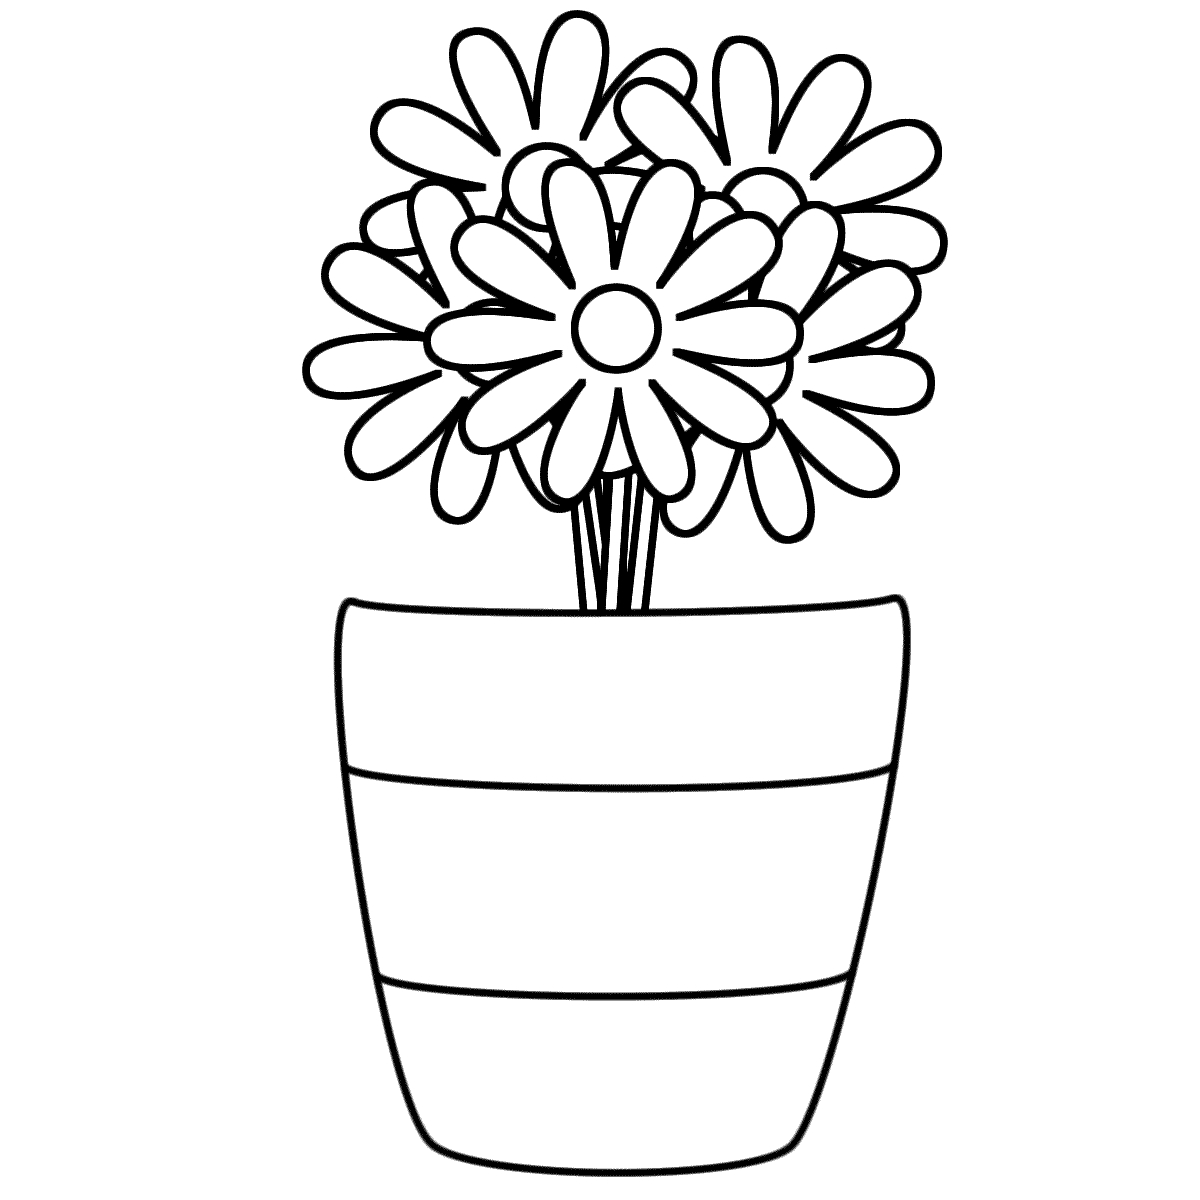 Clipart black and white flowers in a vase picture black and white Vase Clipart Black And White | Free download best Vase Clipart Black ... picture black and white